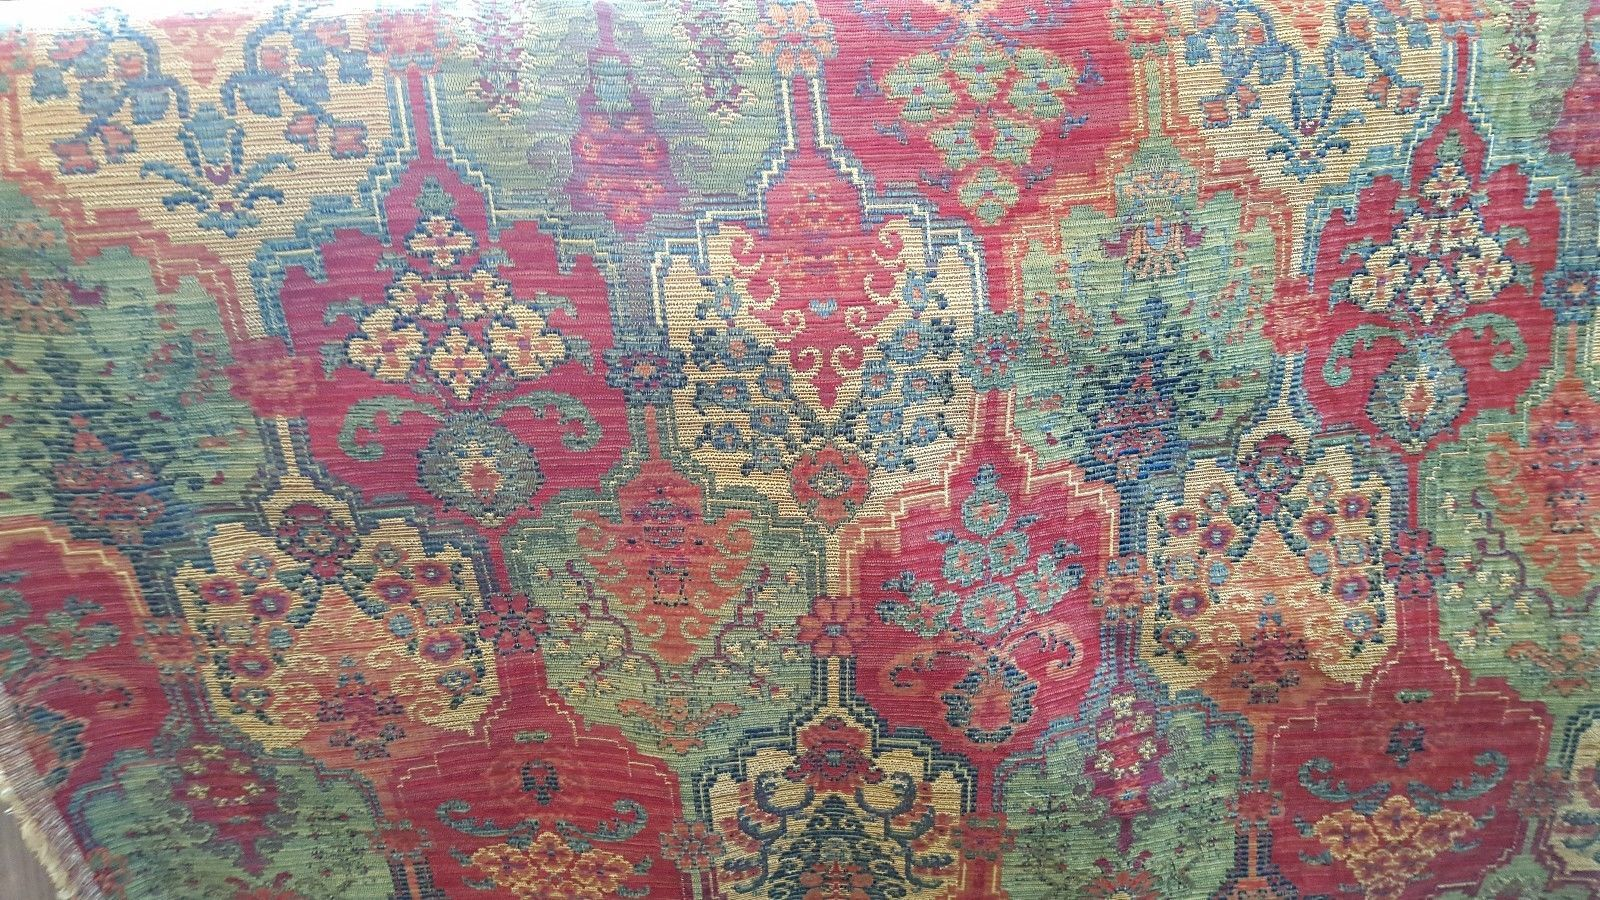 red green blue gold woven medallion tapestry upholstery fabric